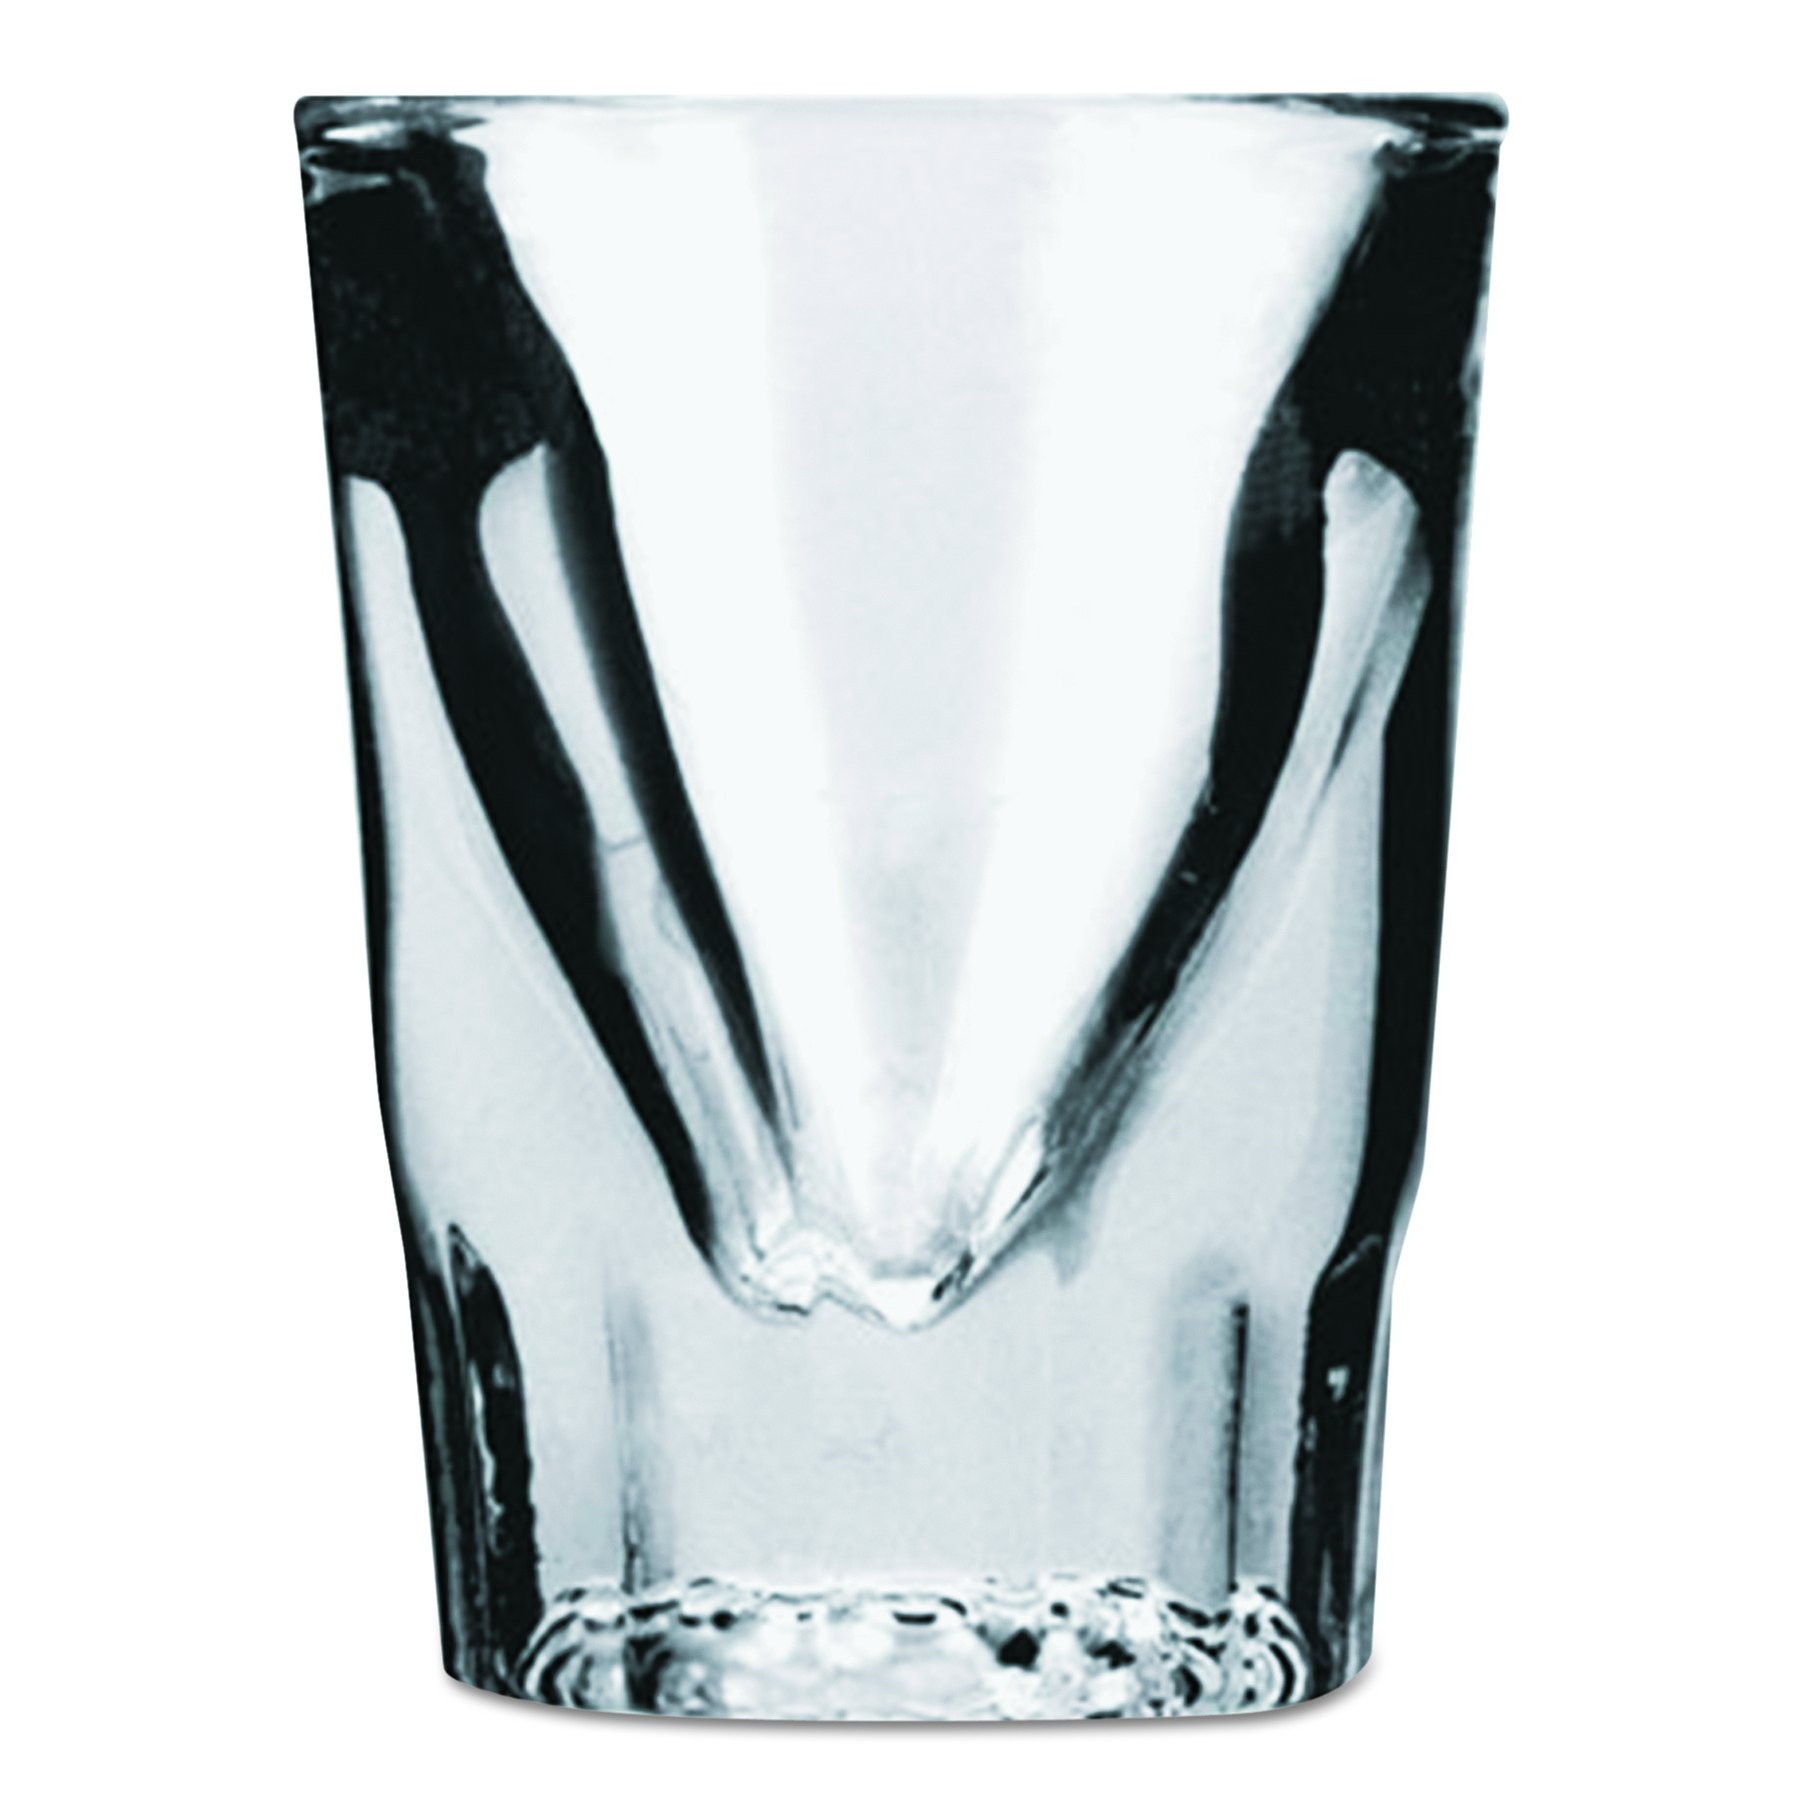 Anchor Hocking 5281U 2-1/4 Inch Diameter x 2-7/8 Inch Height, 1.5-Ounce Whiskey Shooter Glass (Case of 48)